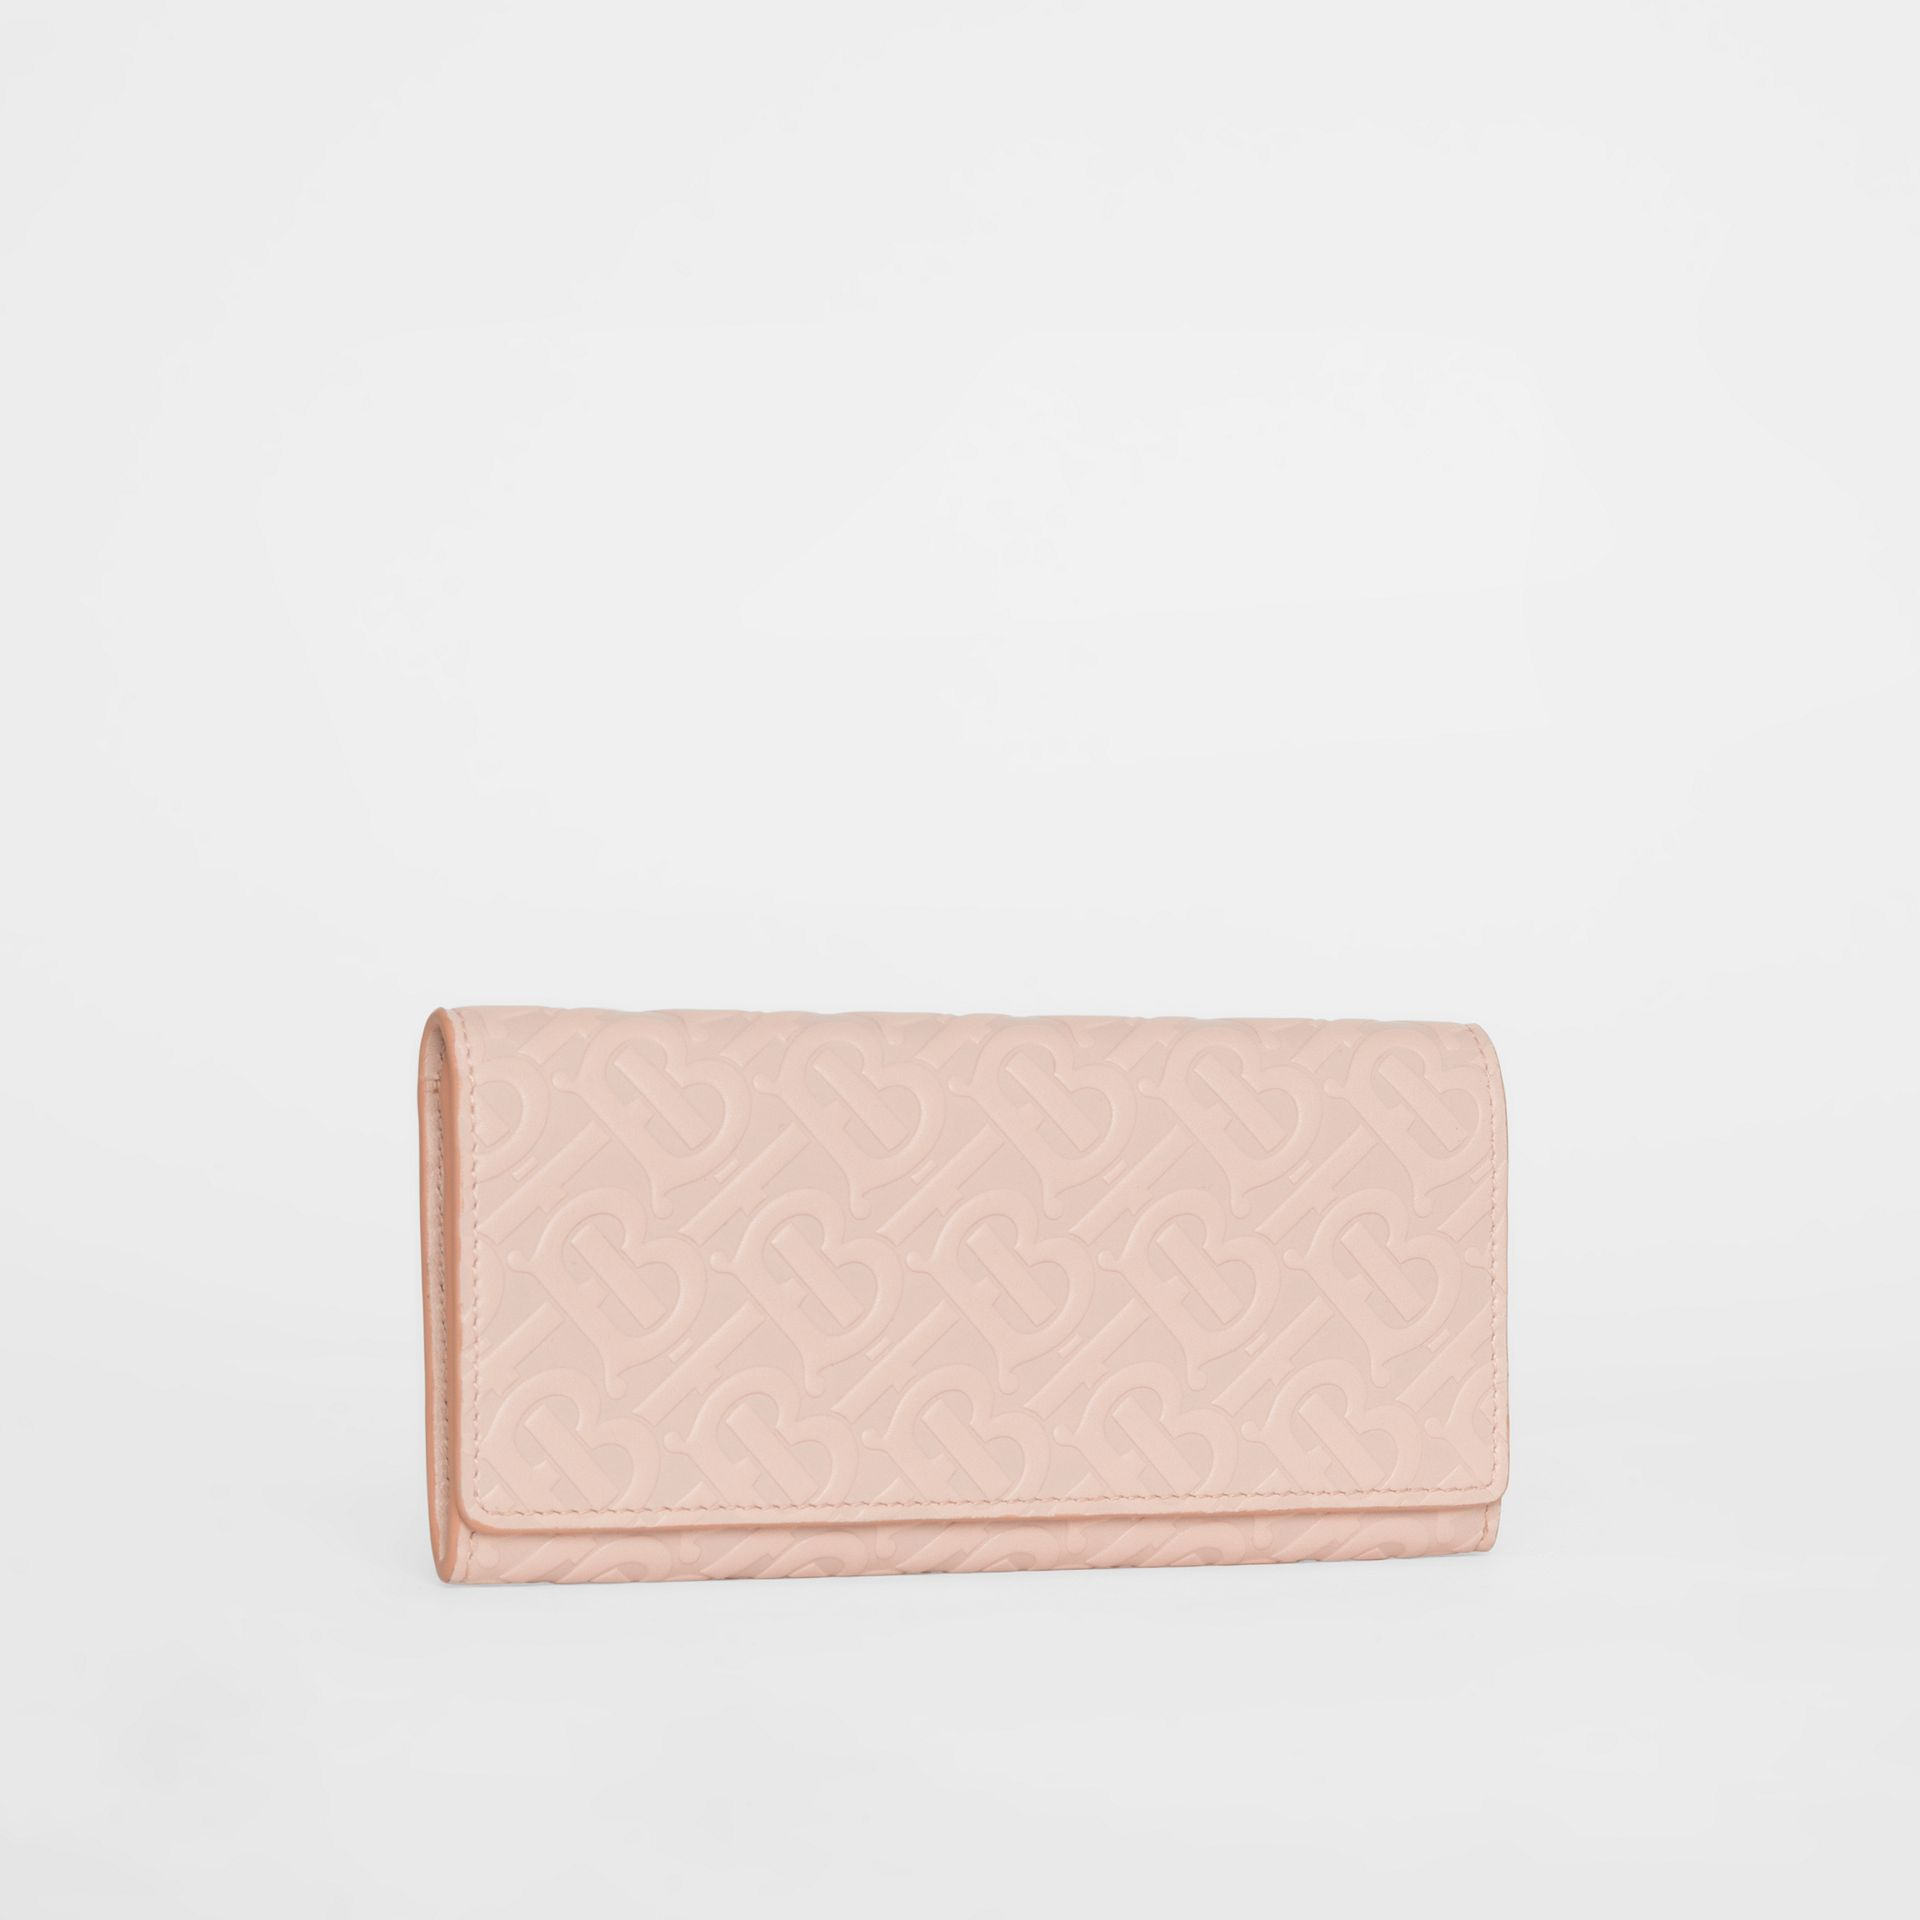 Monogram Leather Continental Wallet in Rose Beige - Women | Burberry Canada - gallery image 4